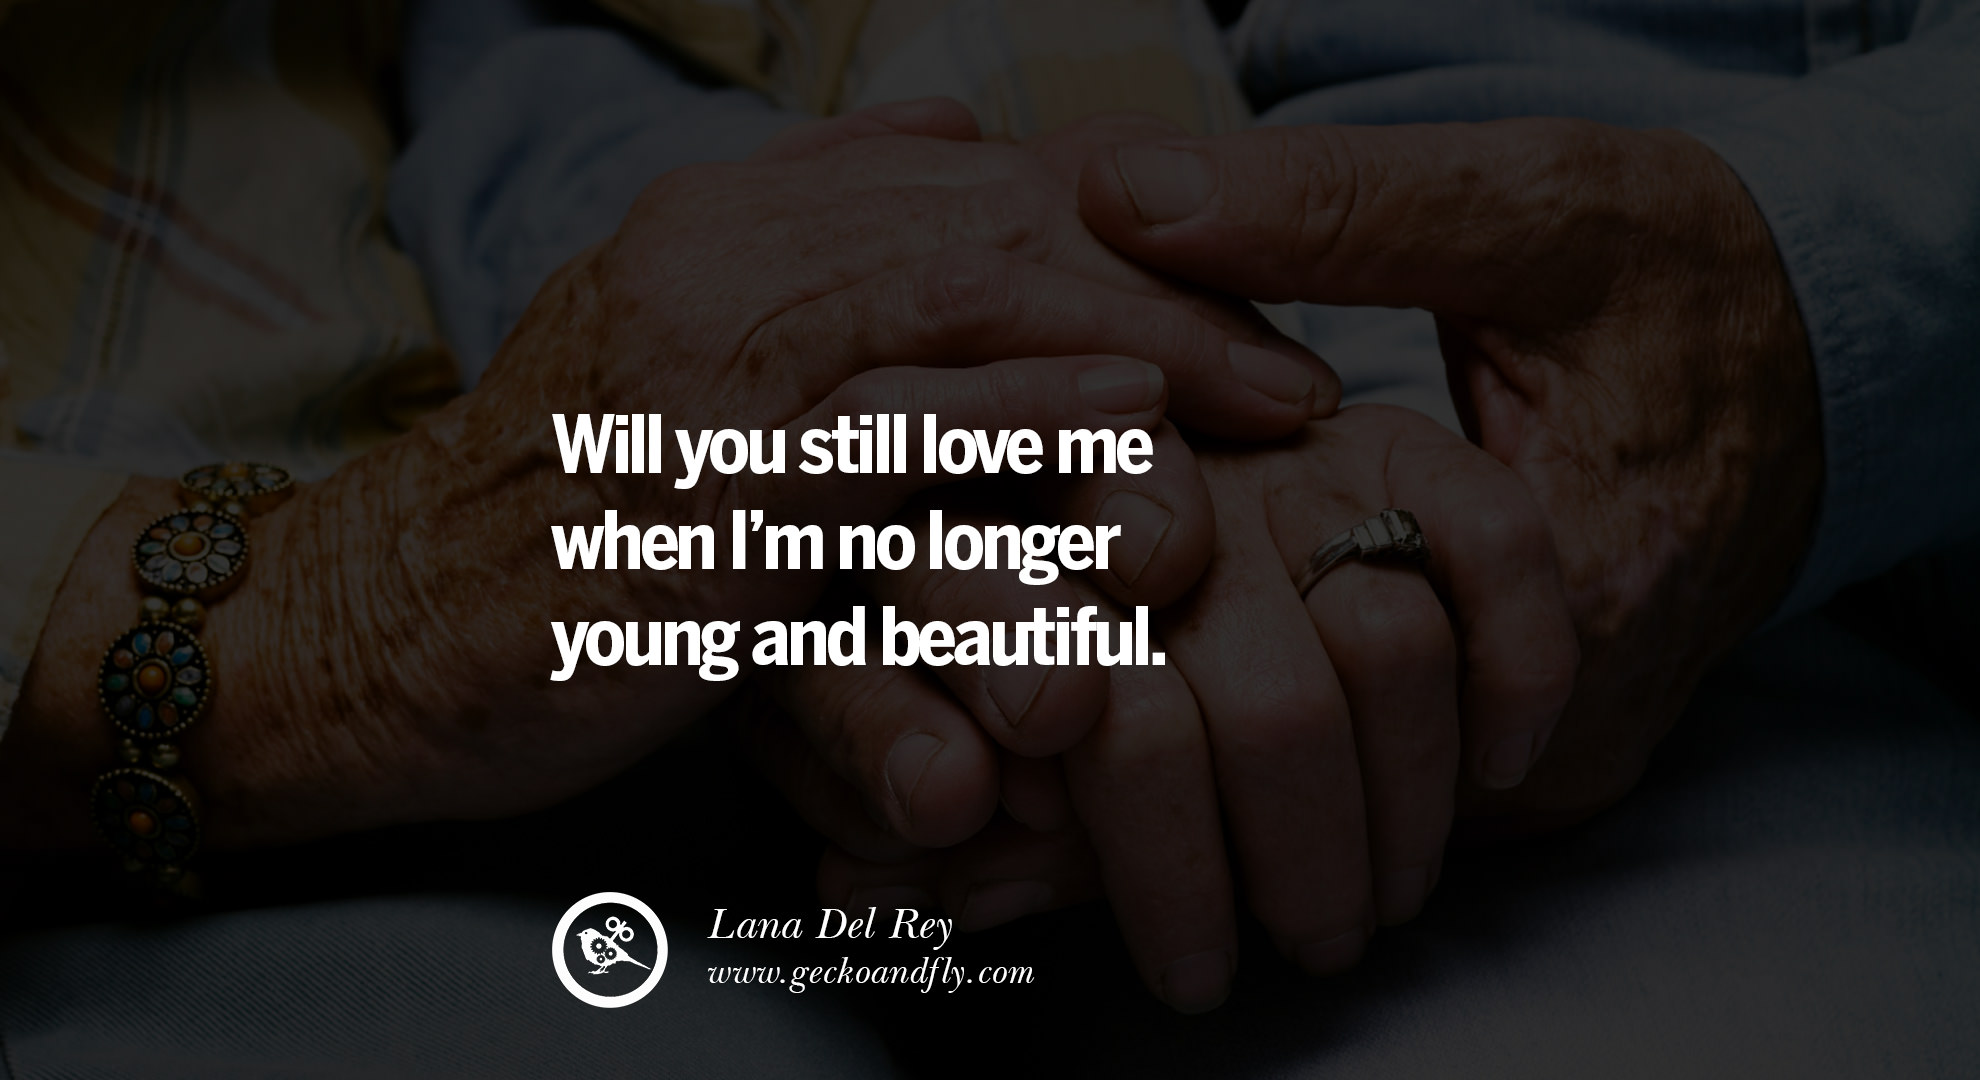 Quotes On Love And Marriage 40 Romantic Quotes About Love Life Marriage And Relationships